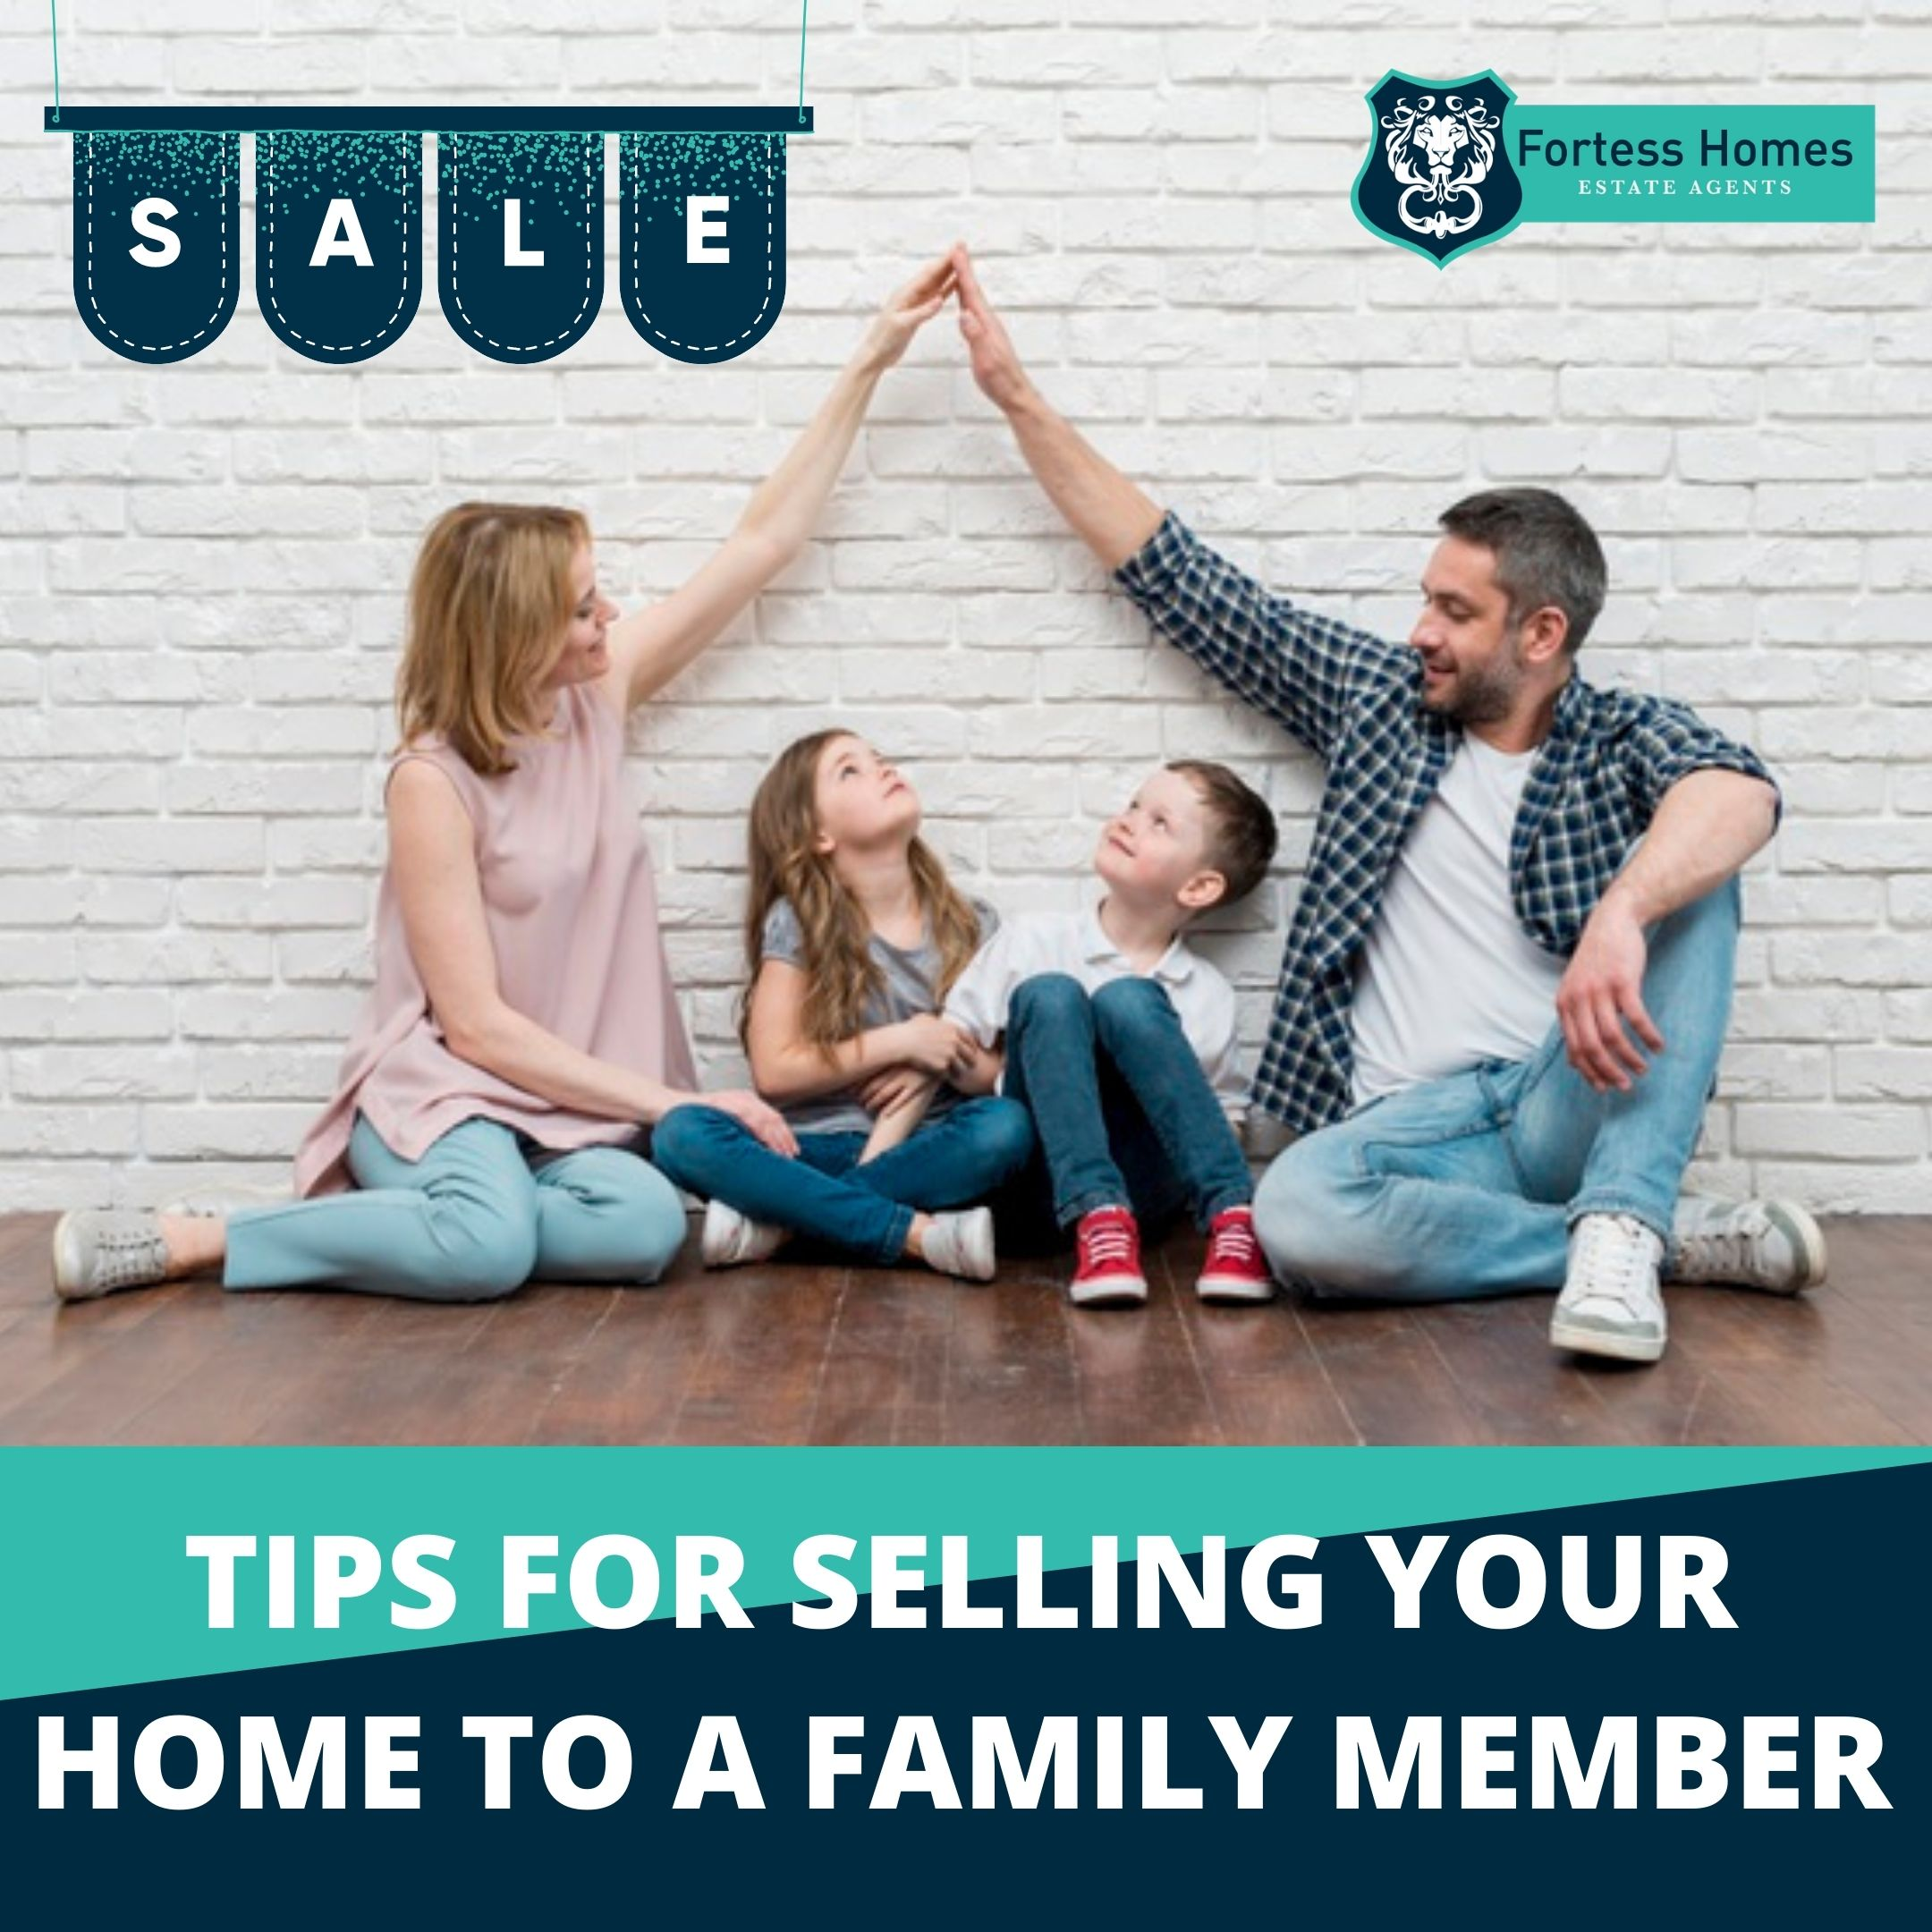 TIPS FOR SELLING YOUR HOME TO A FAMILY MEMBER